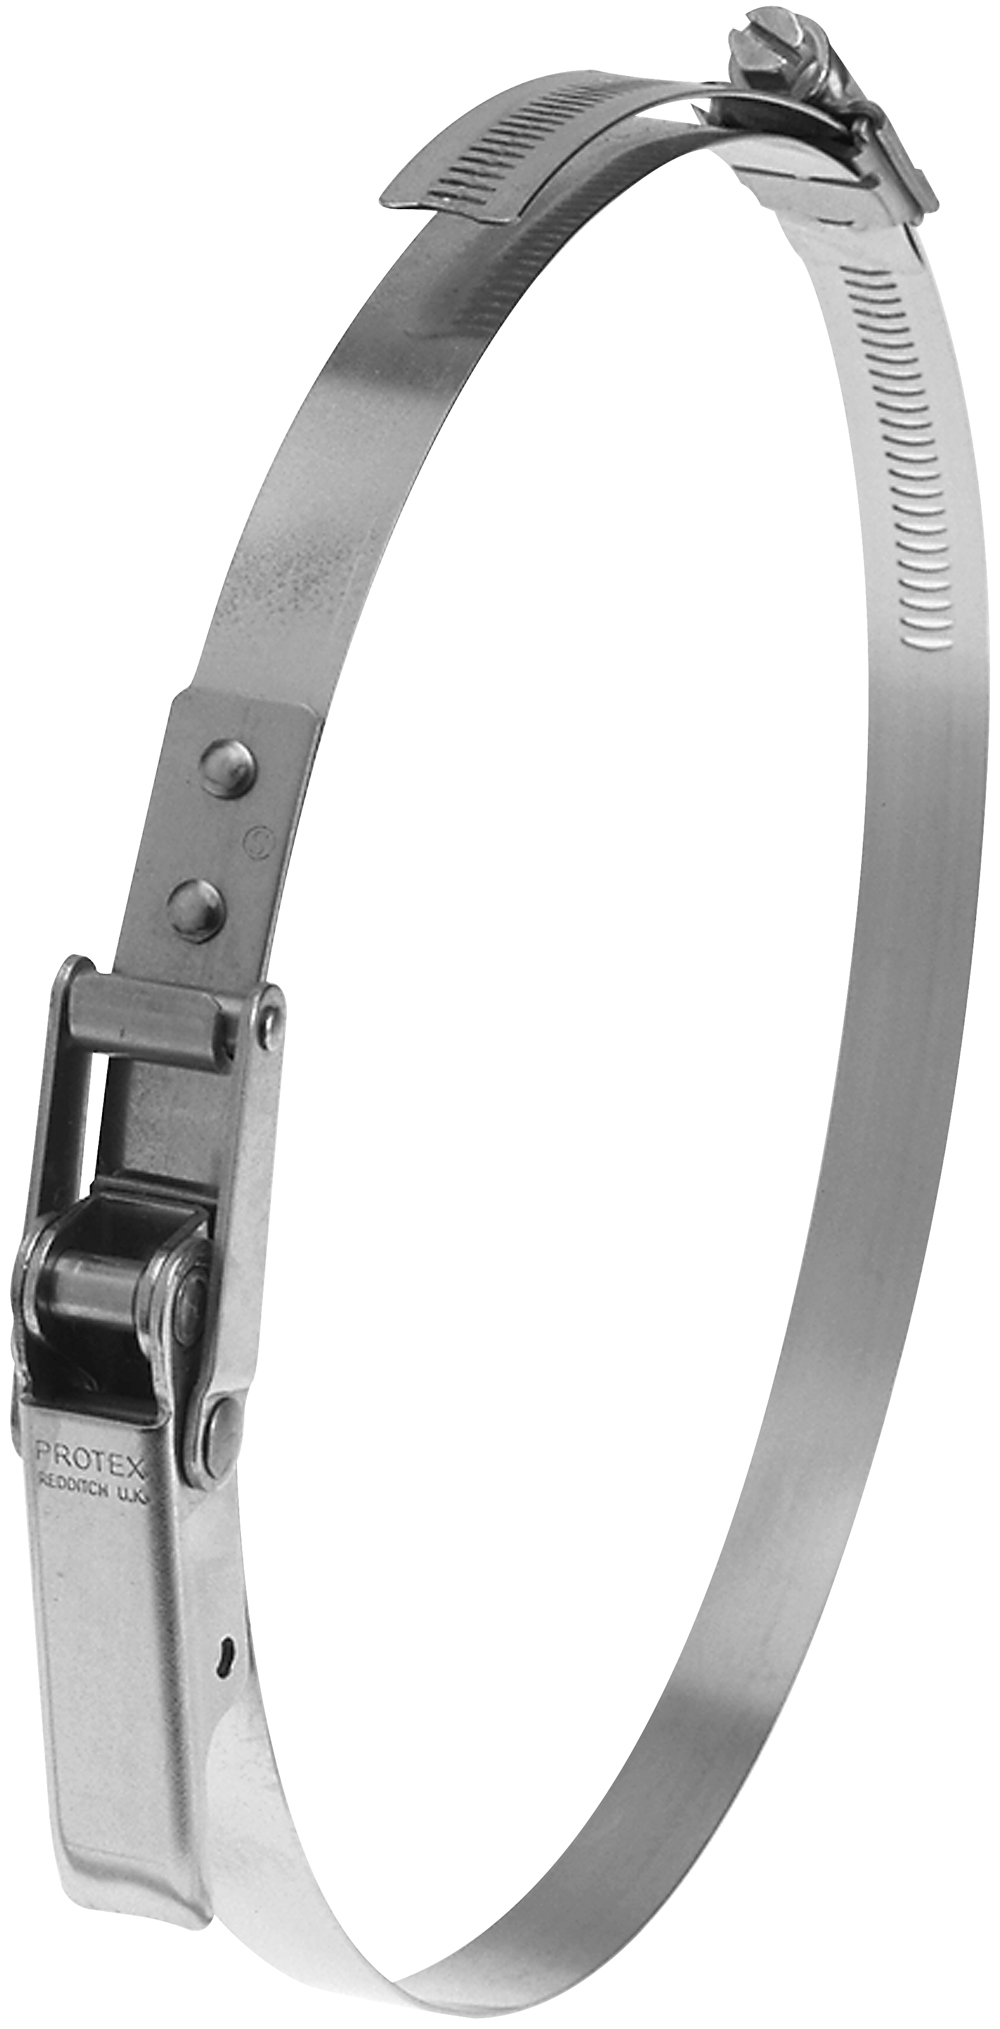 570-615mm Diameter Hi-Torque Rigid Claw Stainless Steel Quick Release Heavy Duty Bandclamp (Natural)